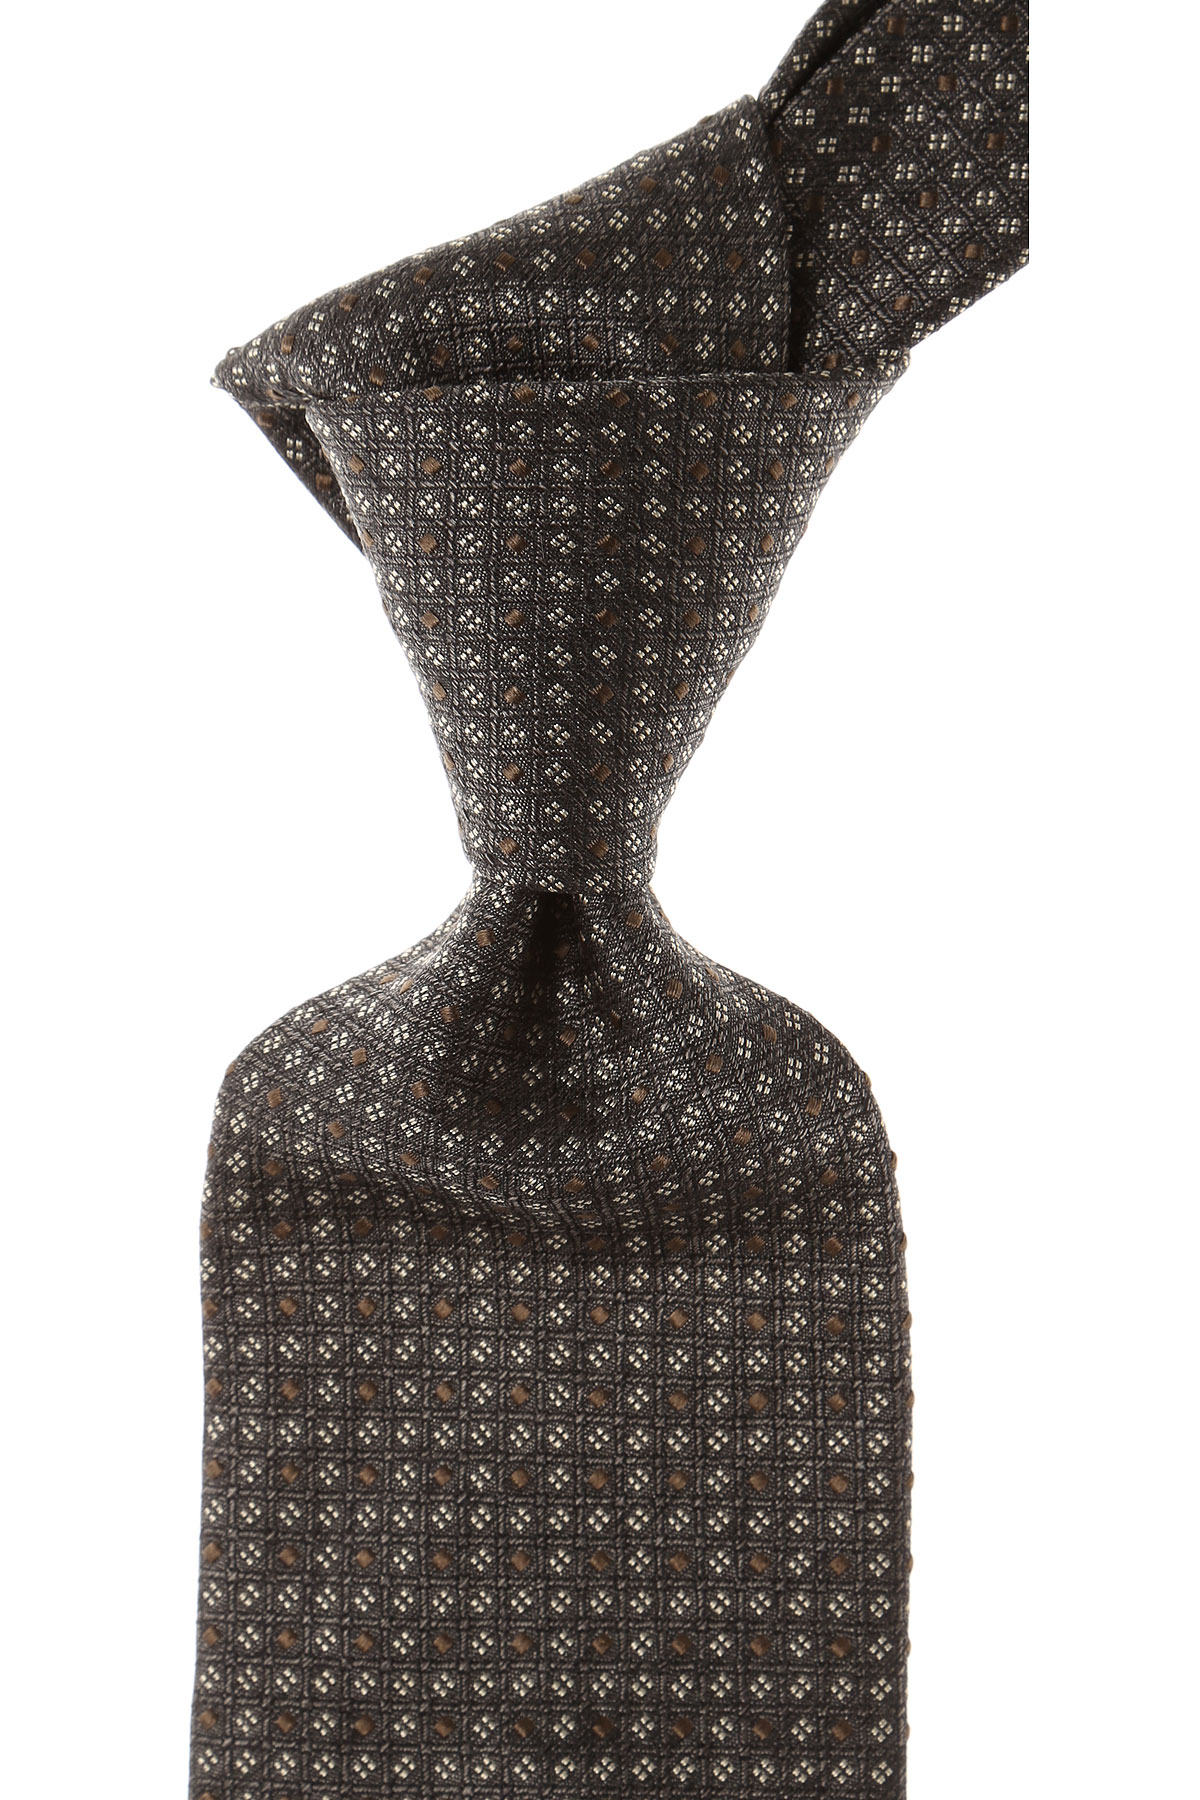 Ermenegildo_Zegna_Ties_On_Sale_Anthracite_Silk_2019